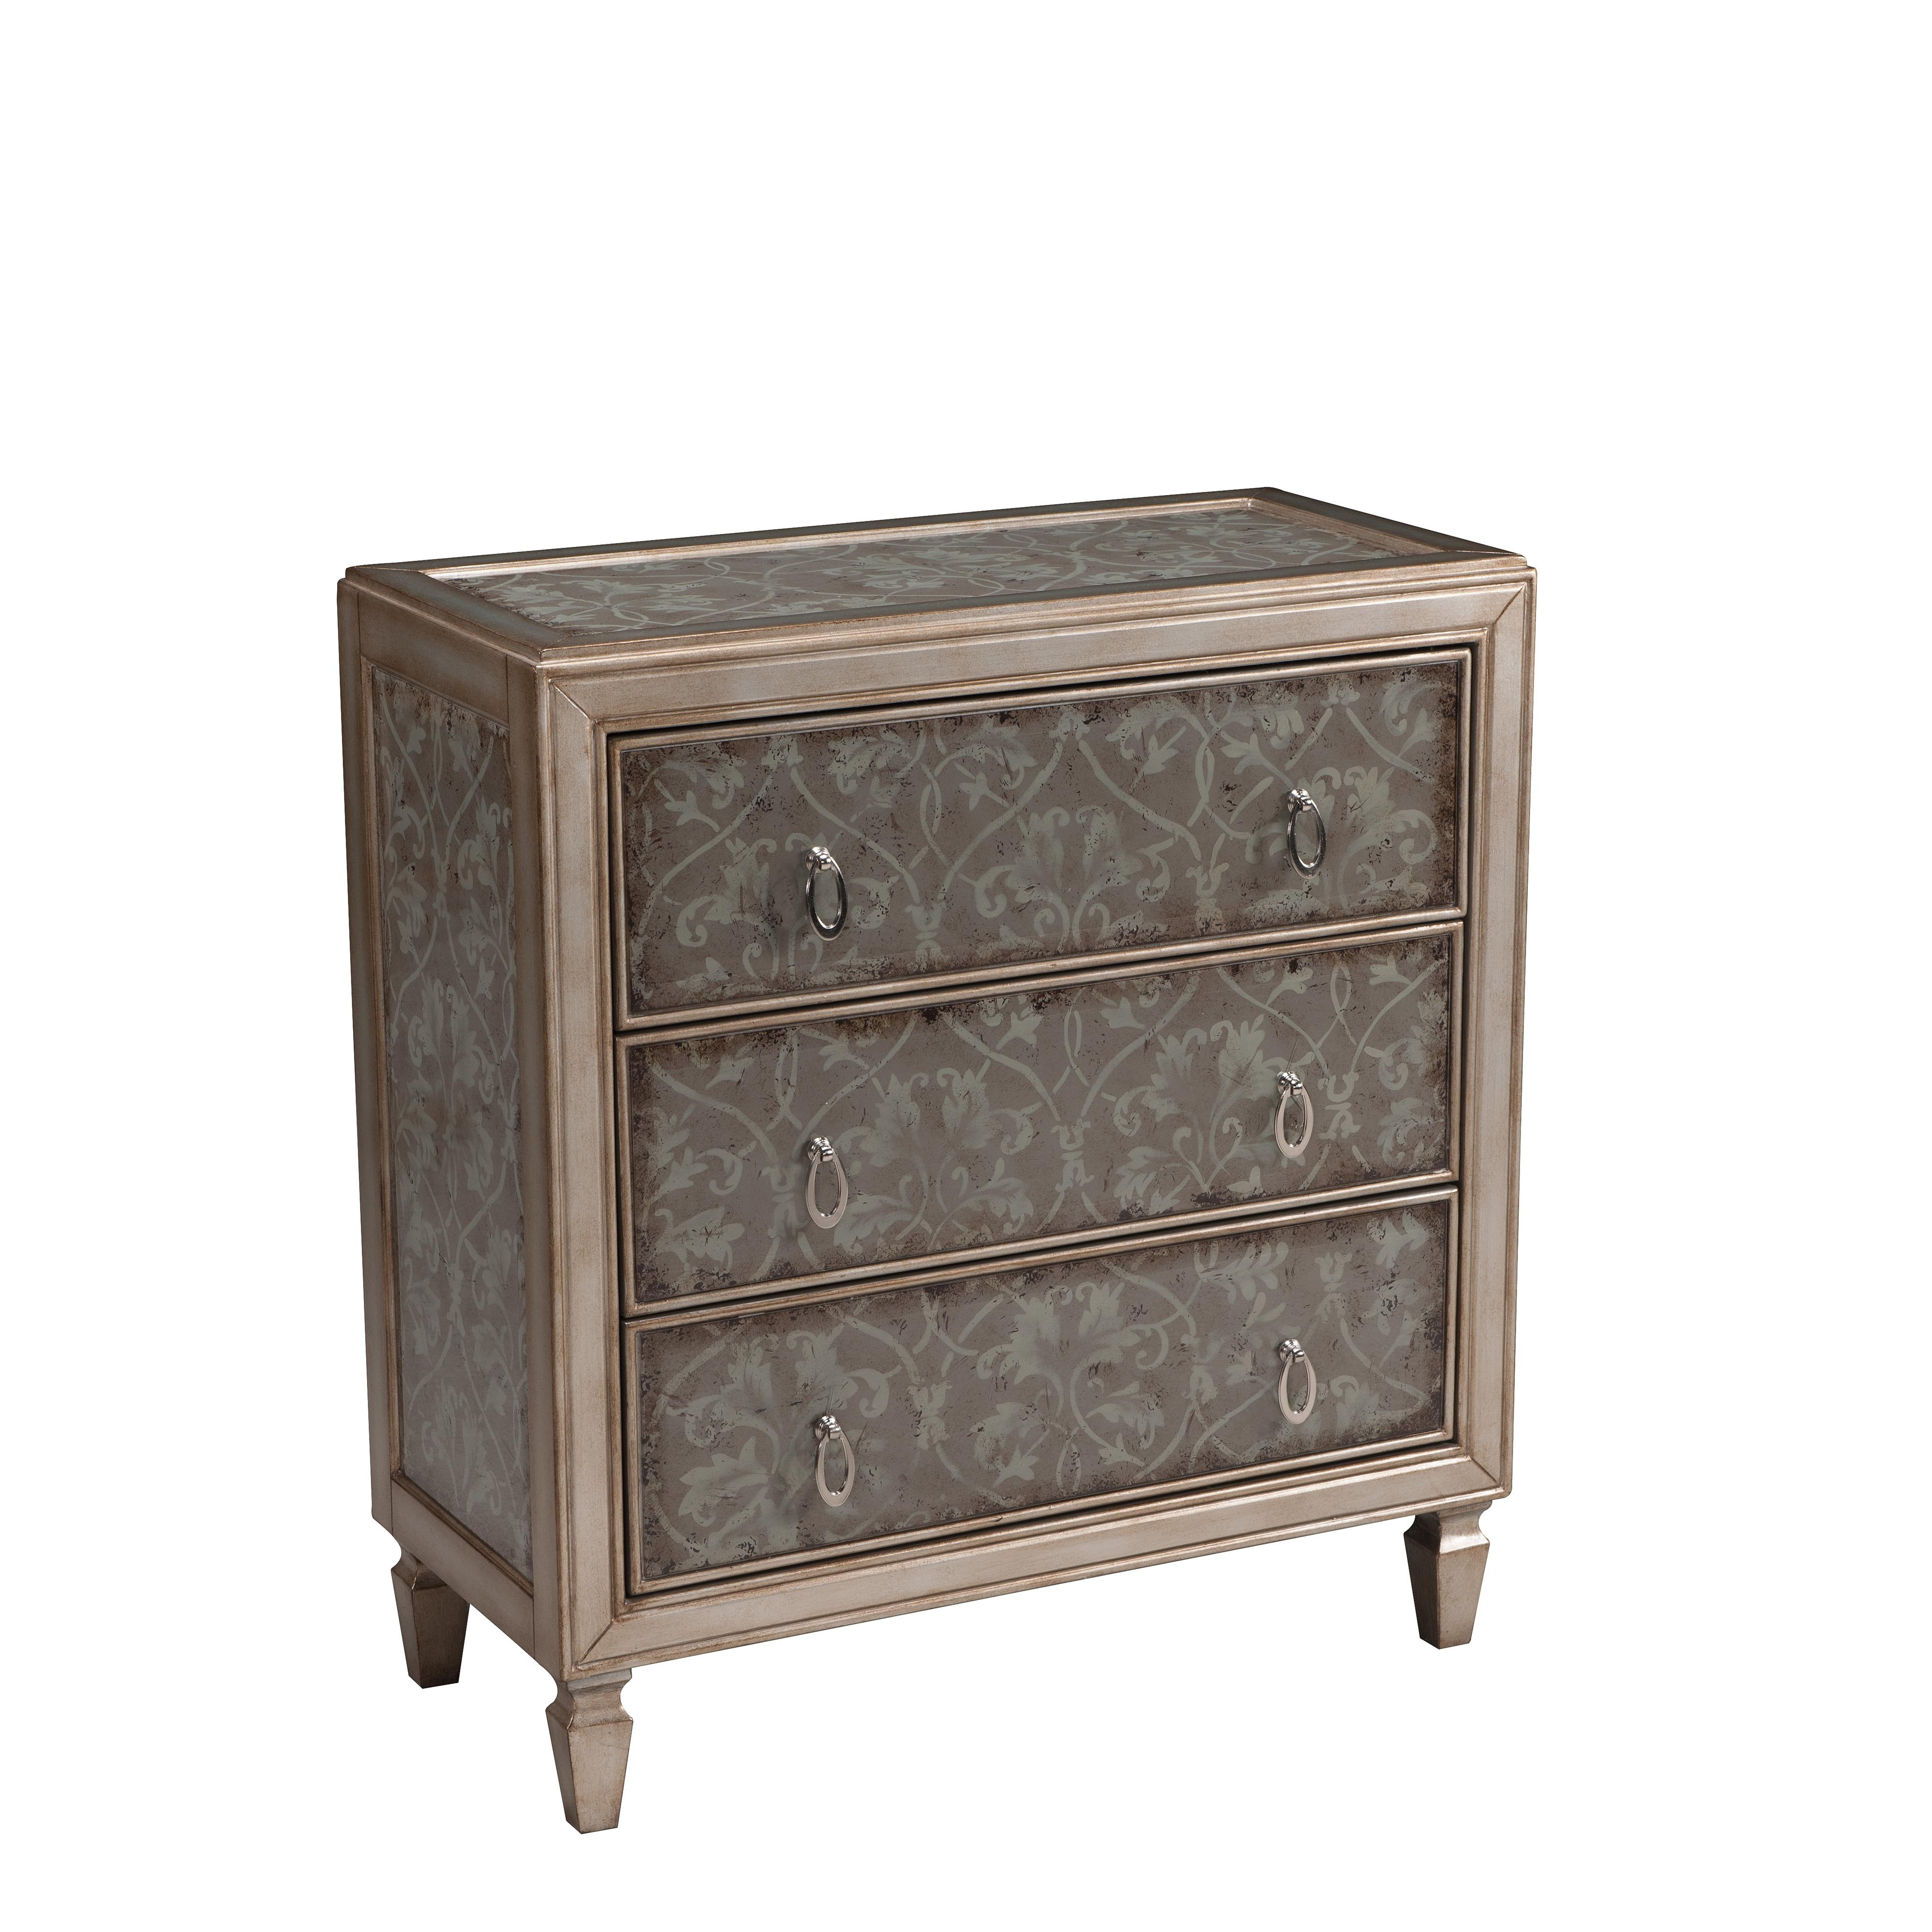 Coast to Coast Imports Accents by Andy Stein Three Drawer Chest - Item Number: 61653